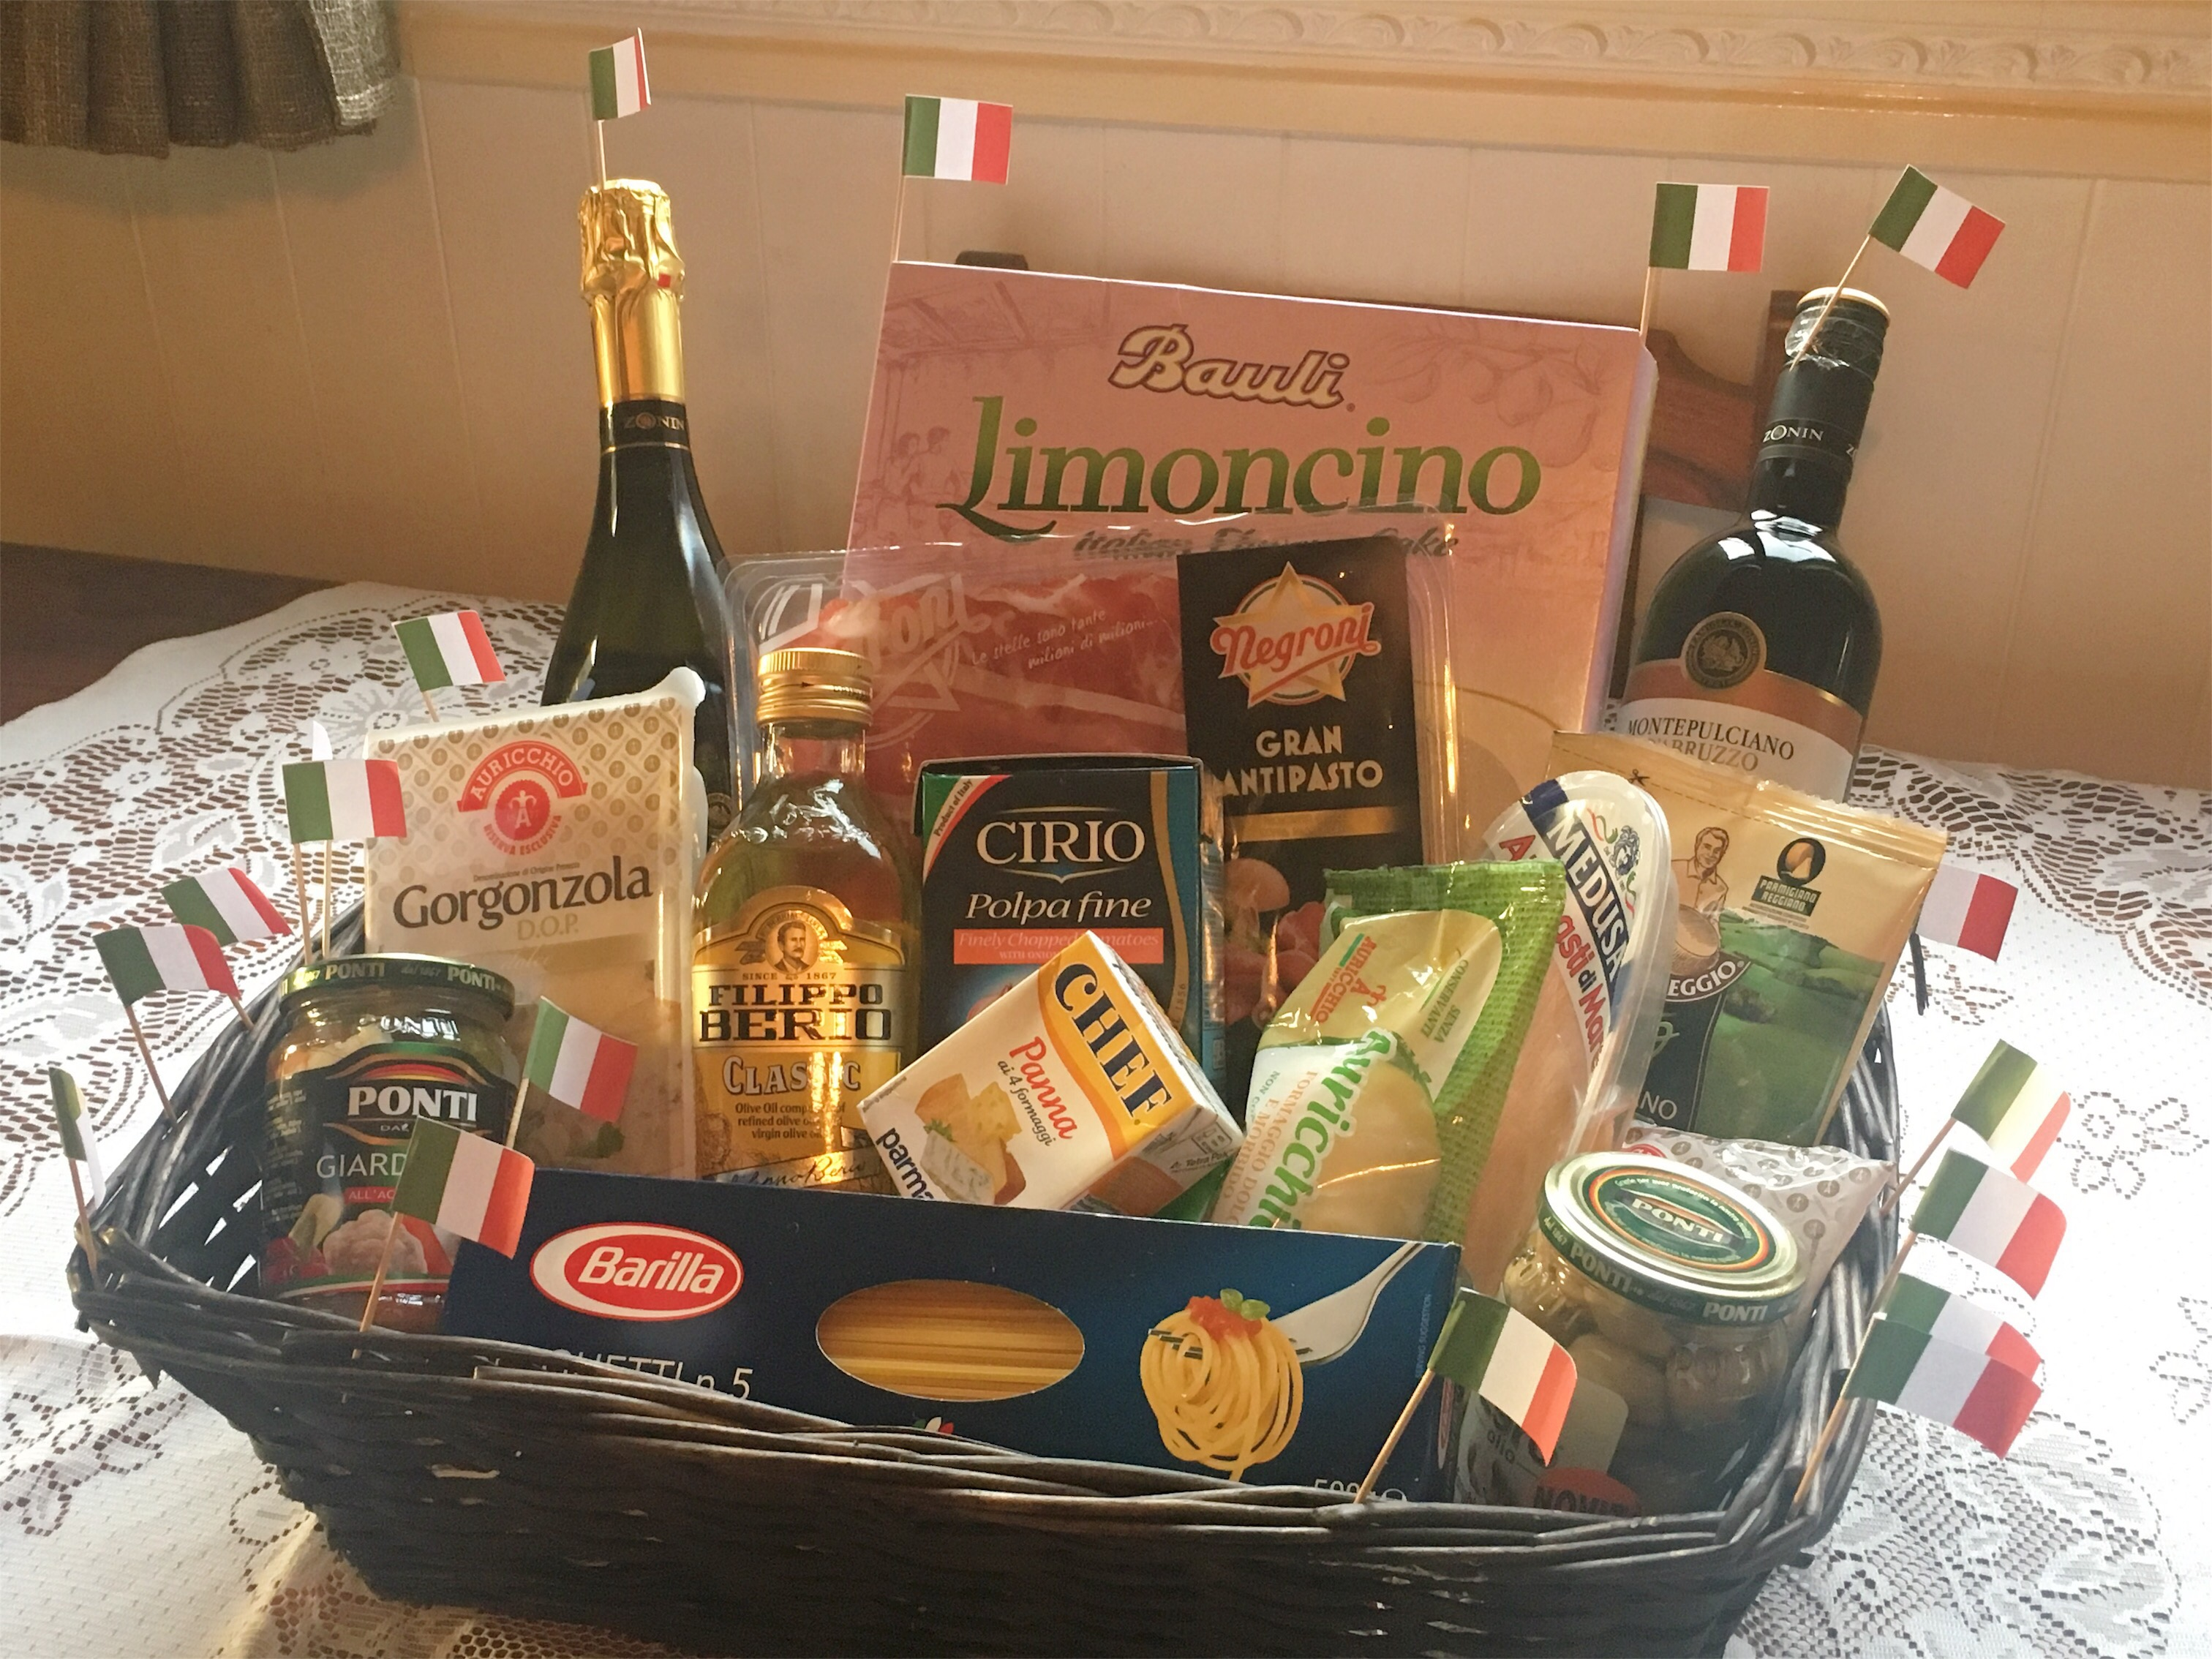 Ciao Gusto Italian Christmas food and drink hamper